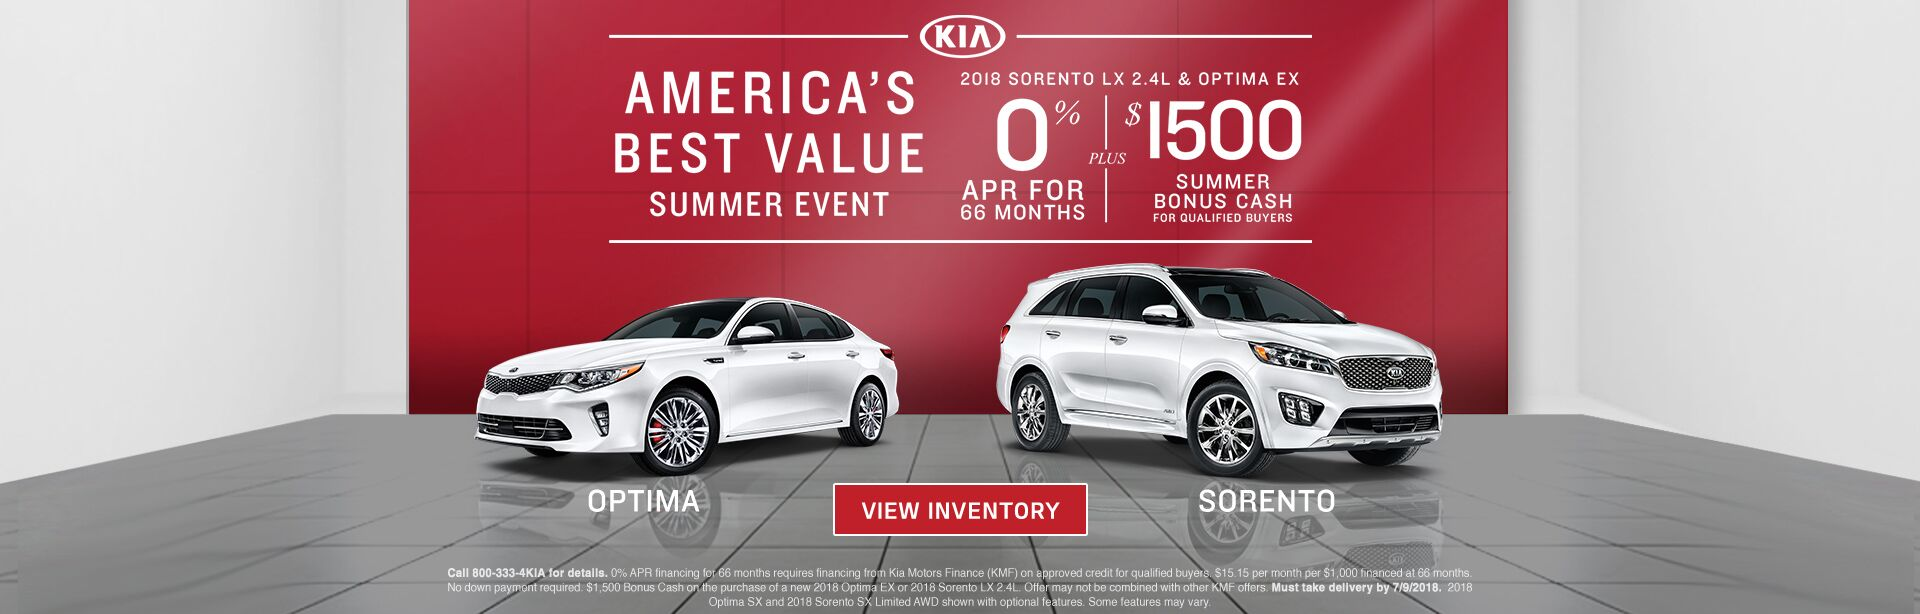 America's Best Value Summer Event at Earnhardt Kia